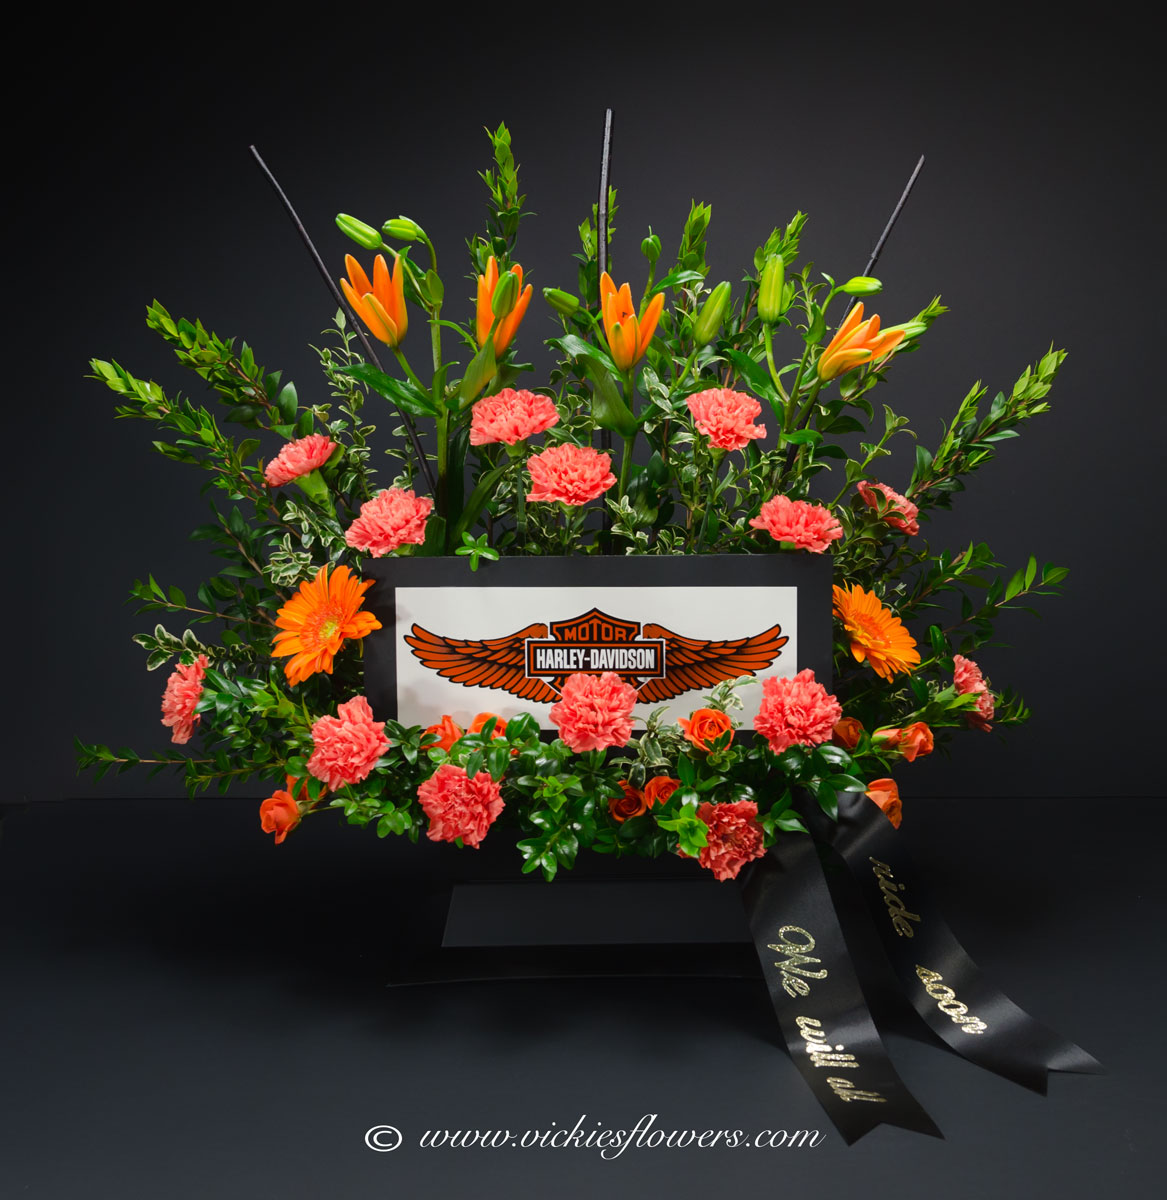 Harley Davidson Funeral Flowers Best Image Of Flower Mojoimage